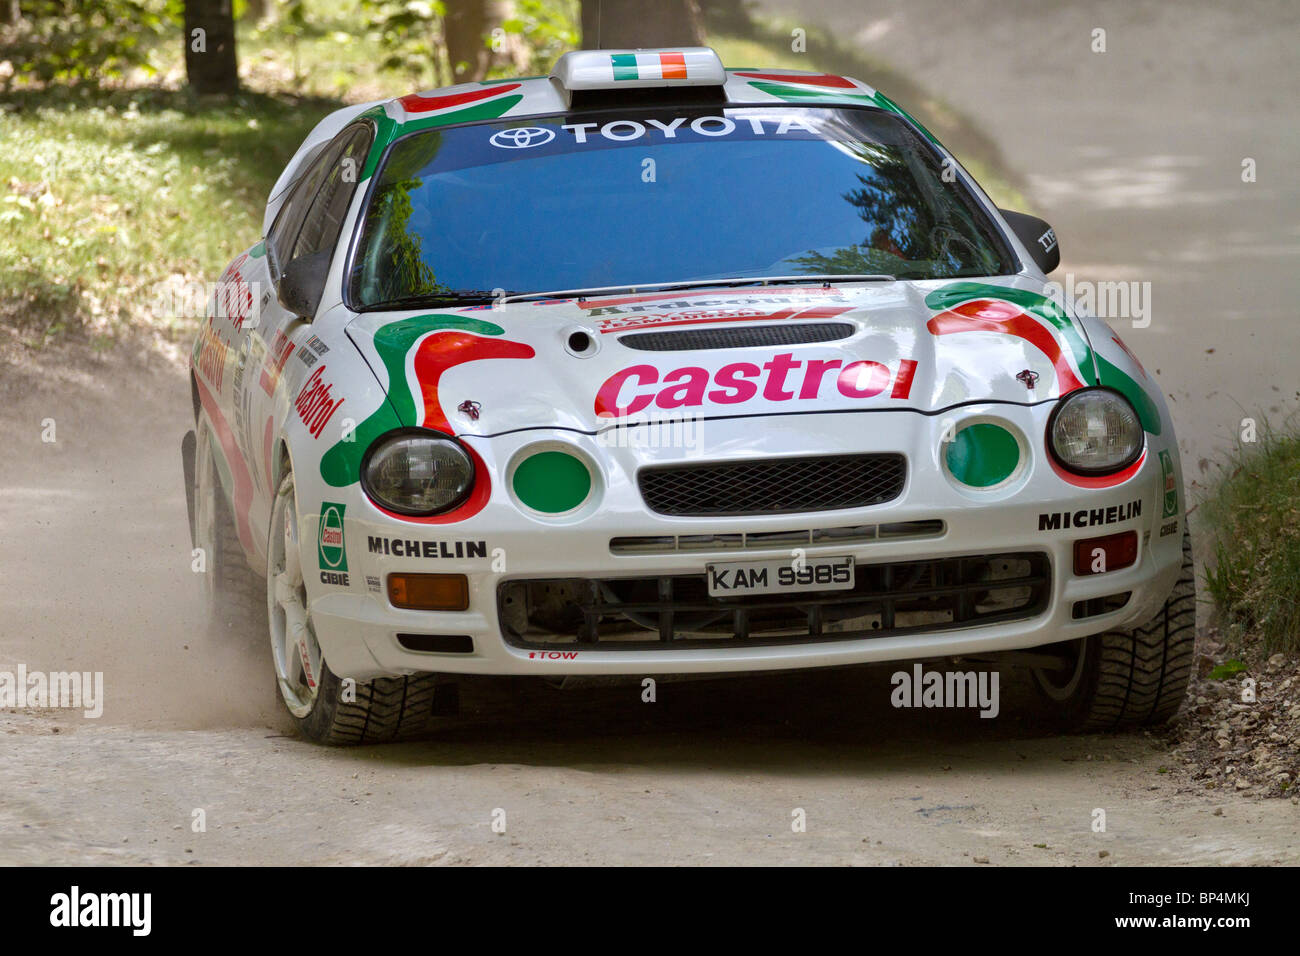 1995 Toyota Celica GTFour ST205 rally car with driver Mark